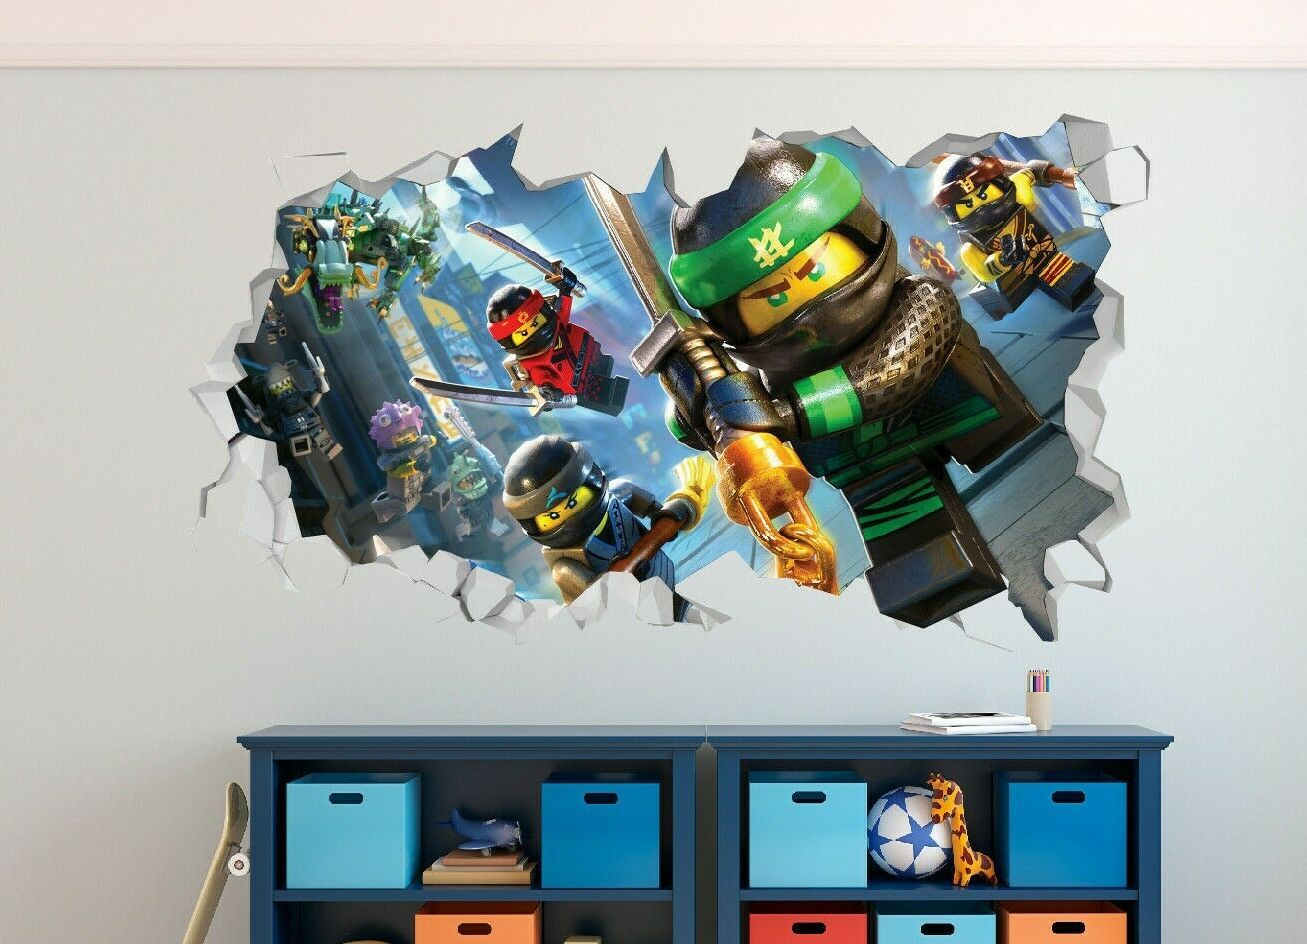 Lego Ninjago Group Action Custom Wall Decals 3D Wall Stickers Art Art GS140 – X-Large (Wide 50 x 30 Height)